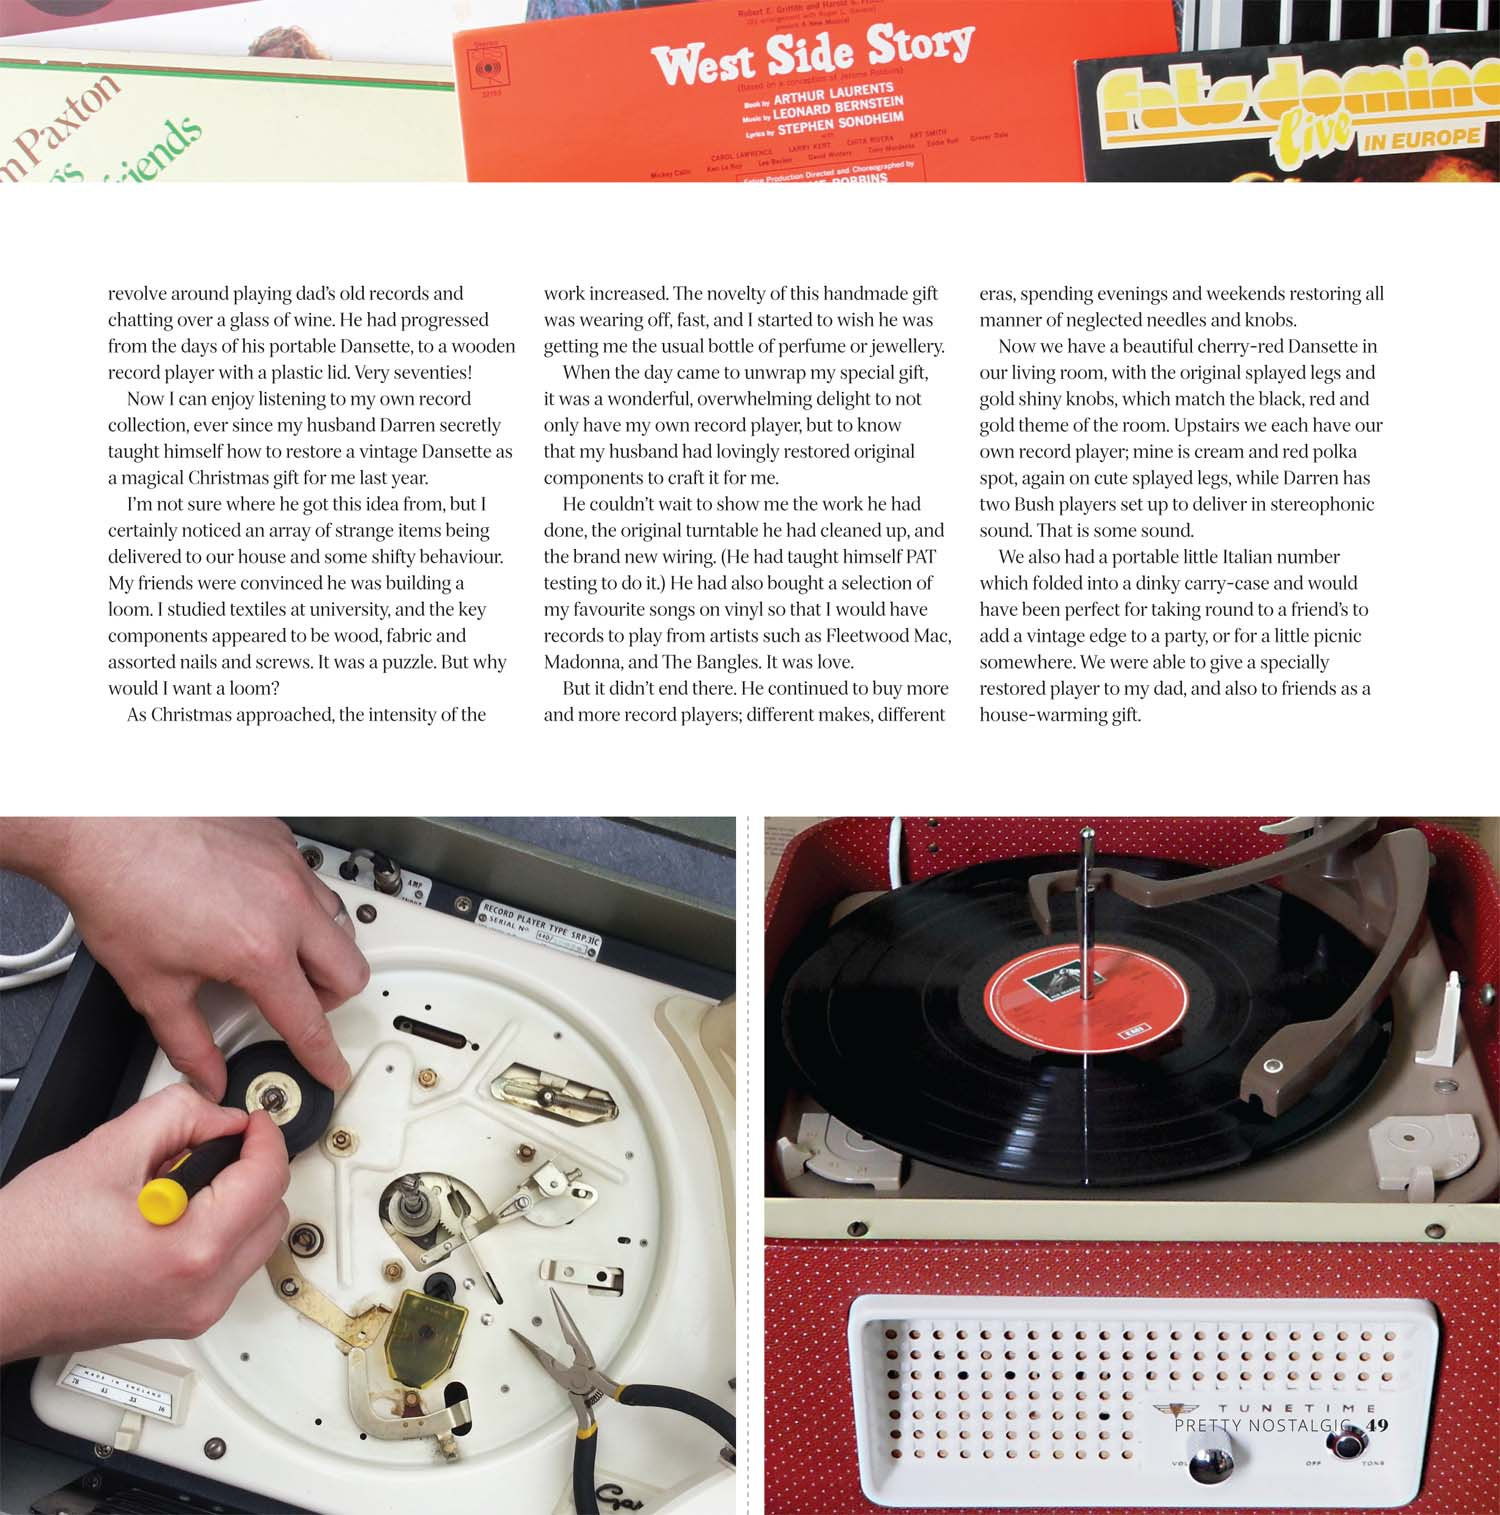 Vintage Record Player Article - Pretty Nostalgic Magazine